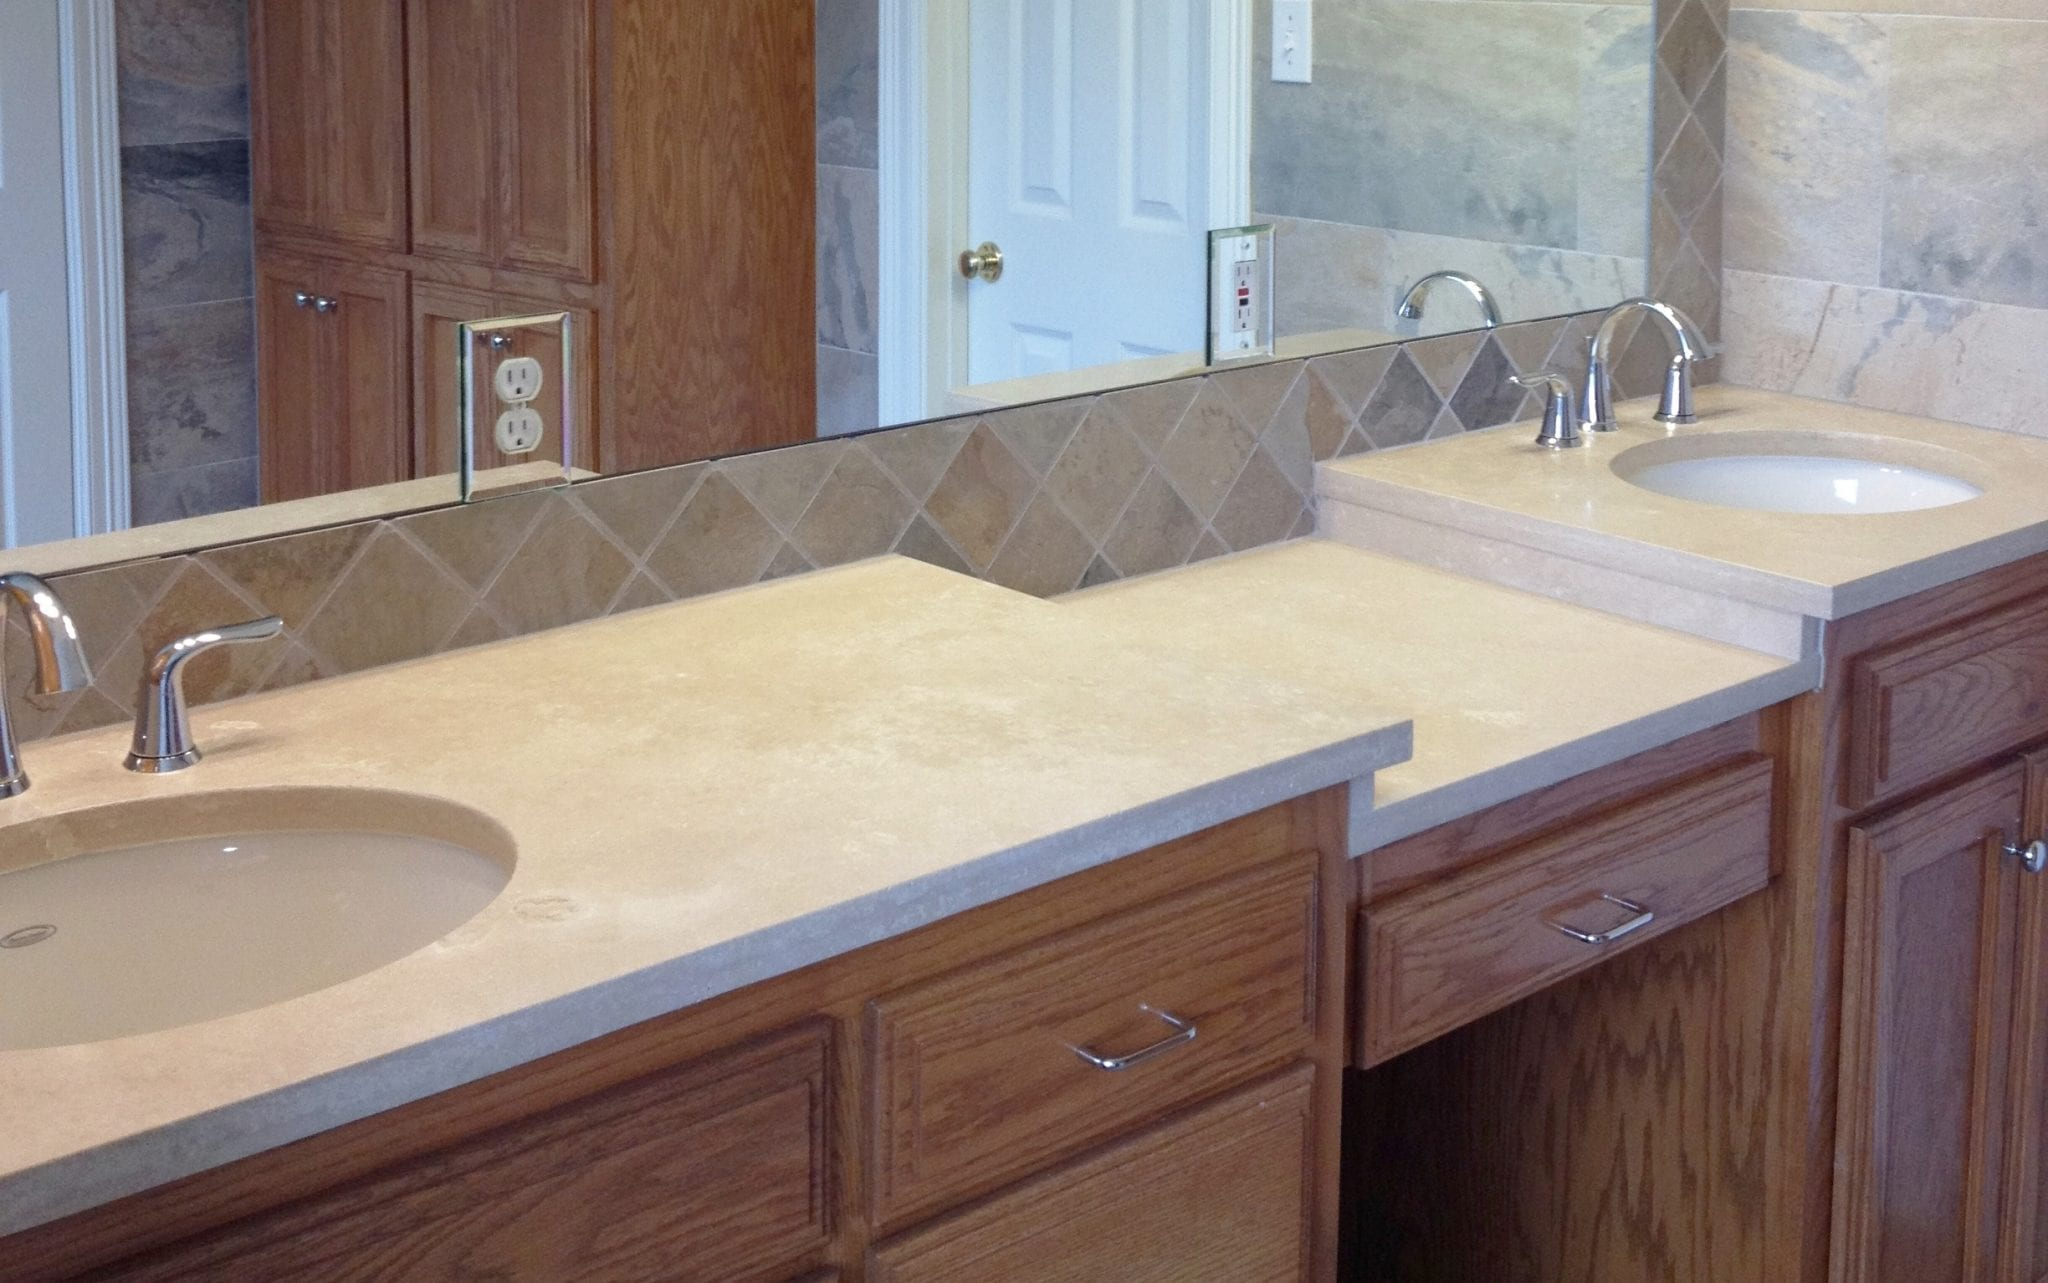 At Home: Countertops 101 | Bossier Press-Tribune